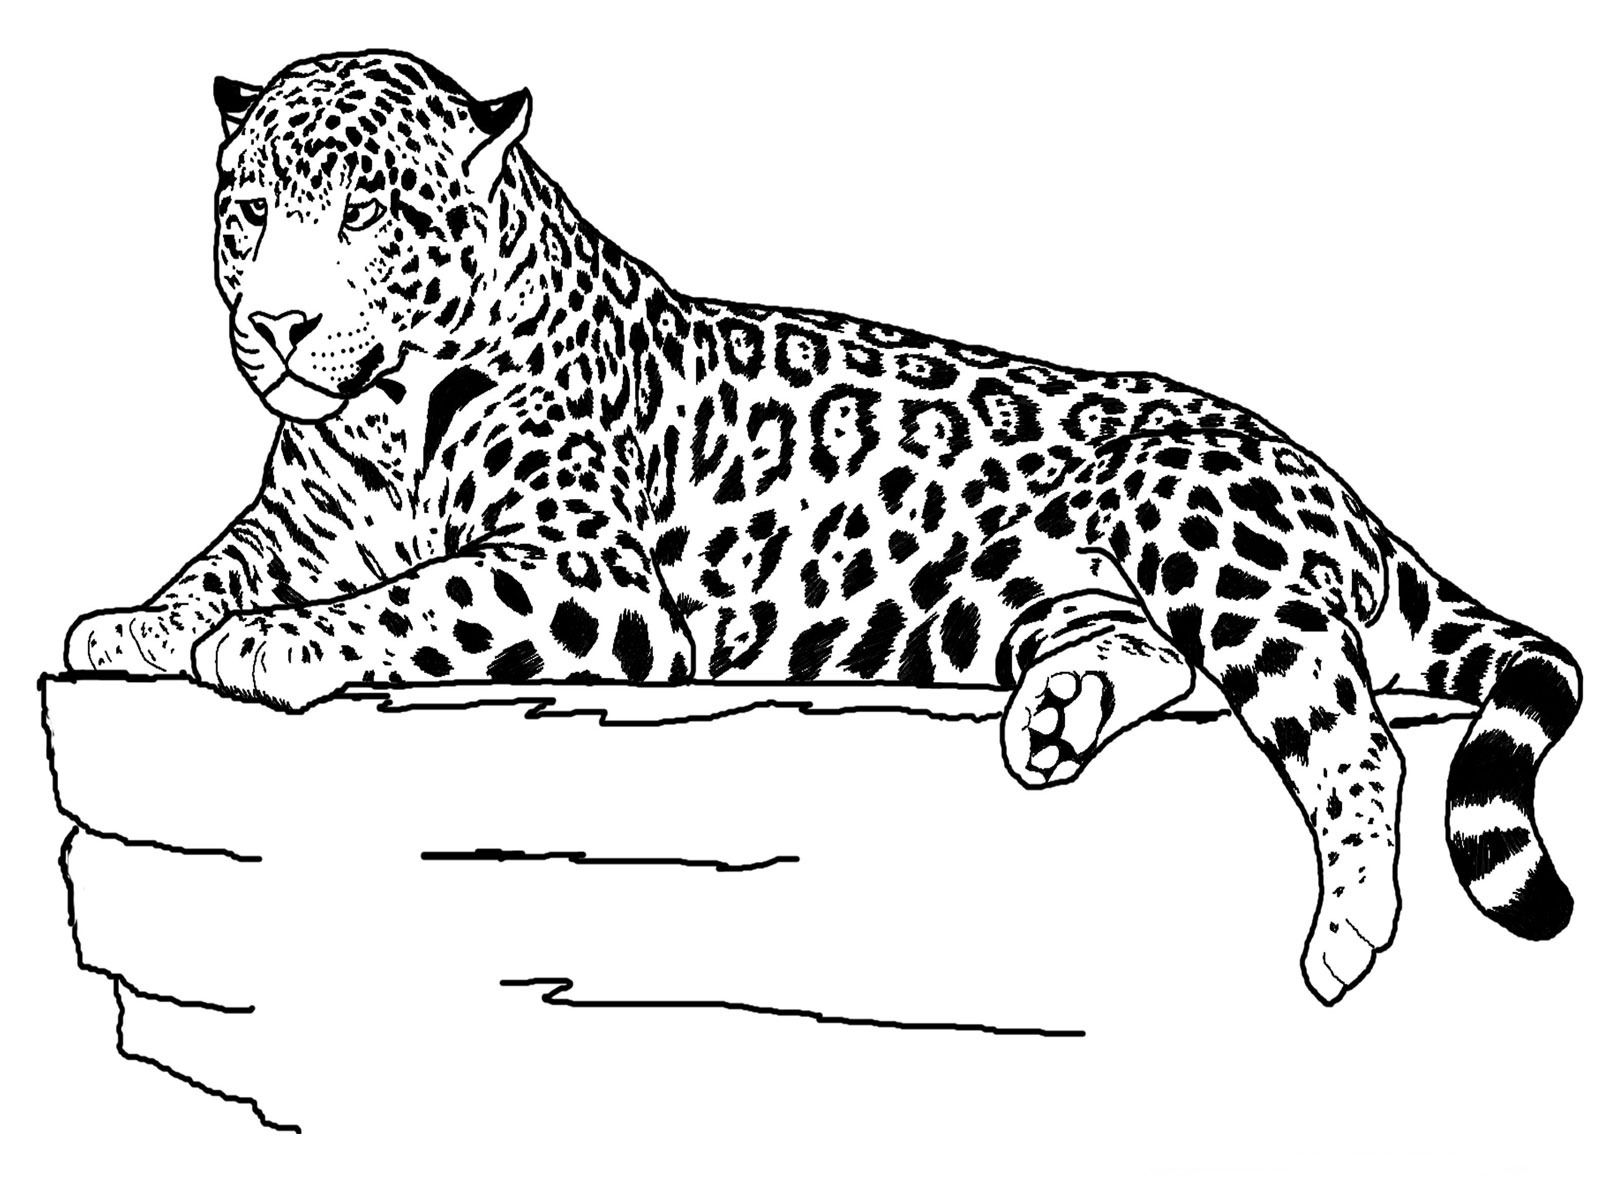 realistic animals coloring pages printable coloring pages sheets for kids get the latest free realistic animals coloring pages images favorite coloring